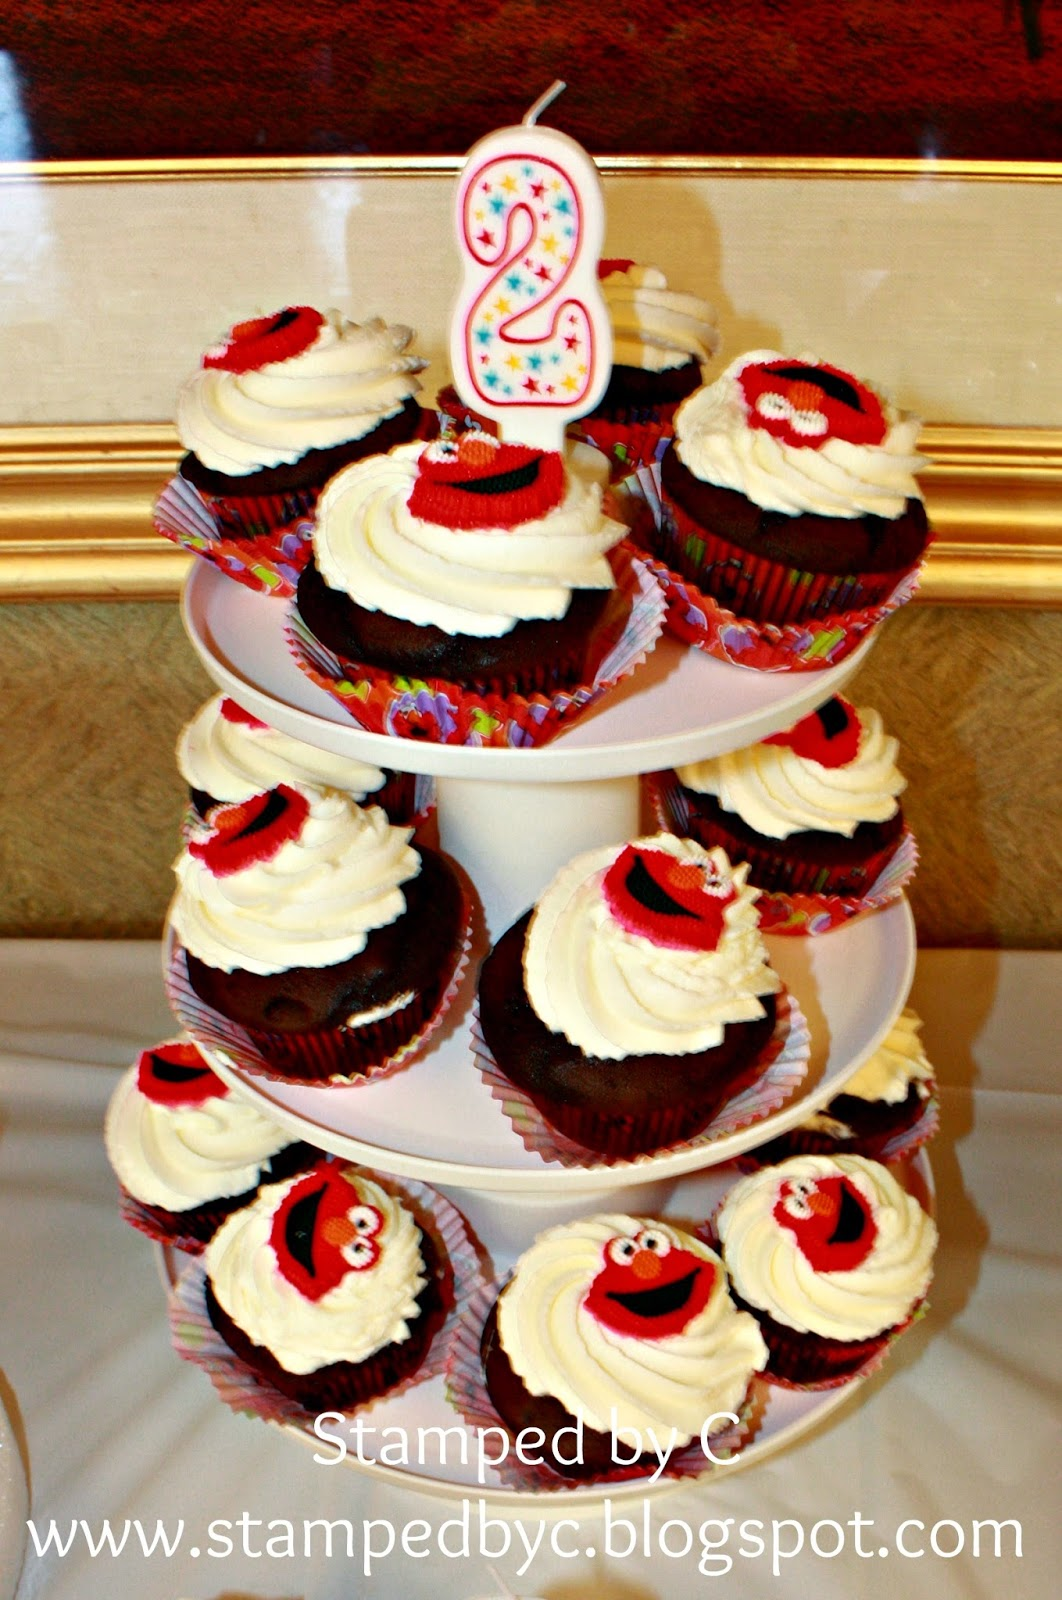 Elmo Bedroom Decorating Ideas: Stamped By C: R's Elmo-themed 2nd Birthday Party